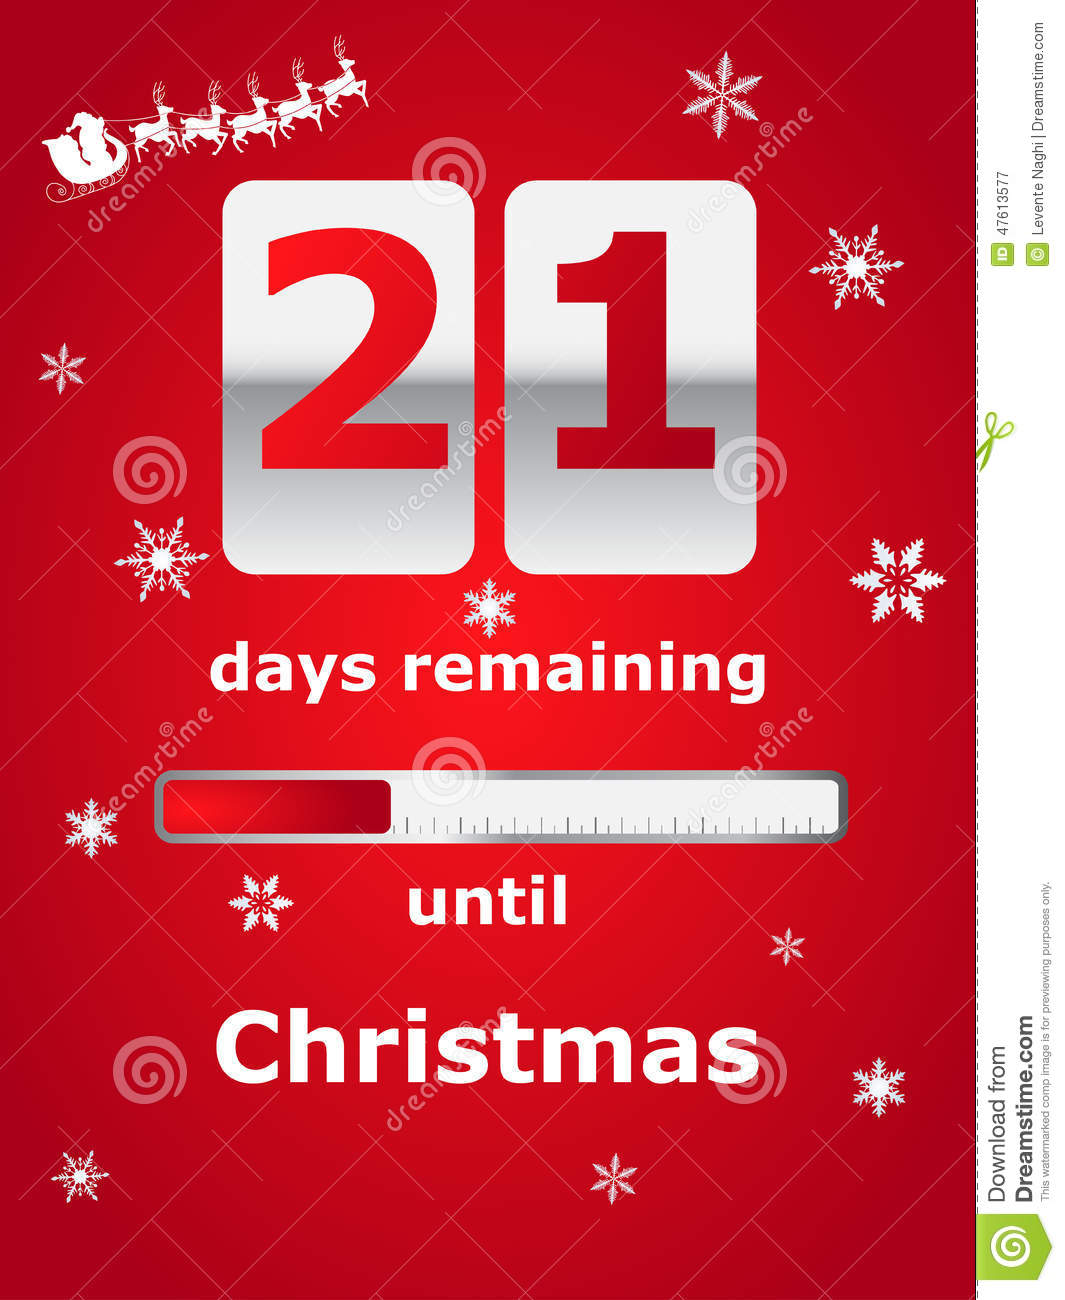 How Many Days Left Until Christmas.Countdown Till Christmas Stock Vector Illustration Of